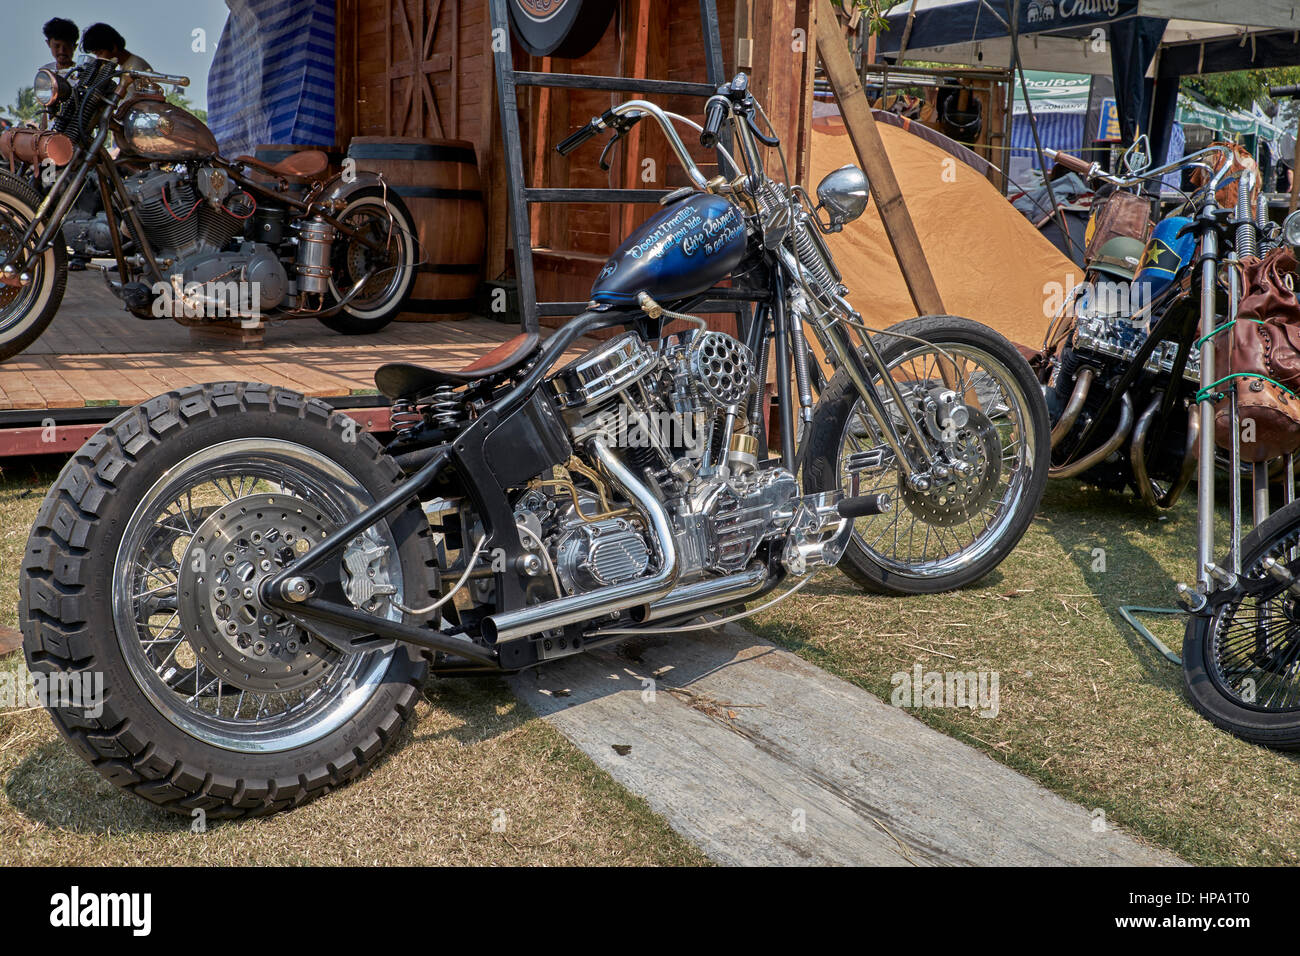 Harley Davidson modified and customised chopper motorcycle - Stock Image